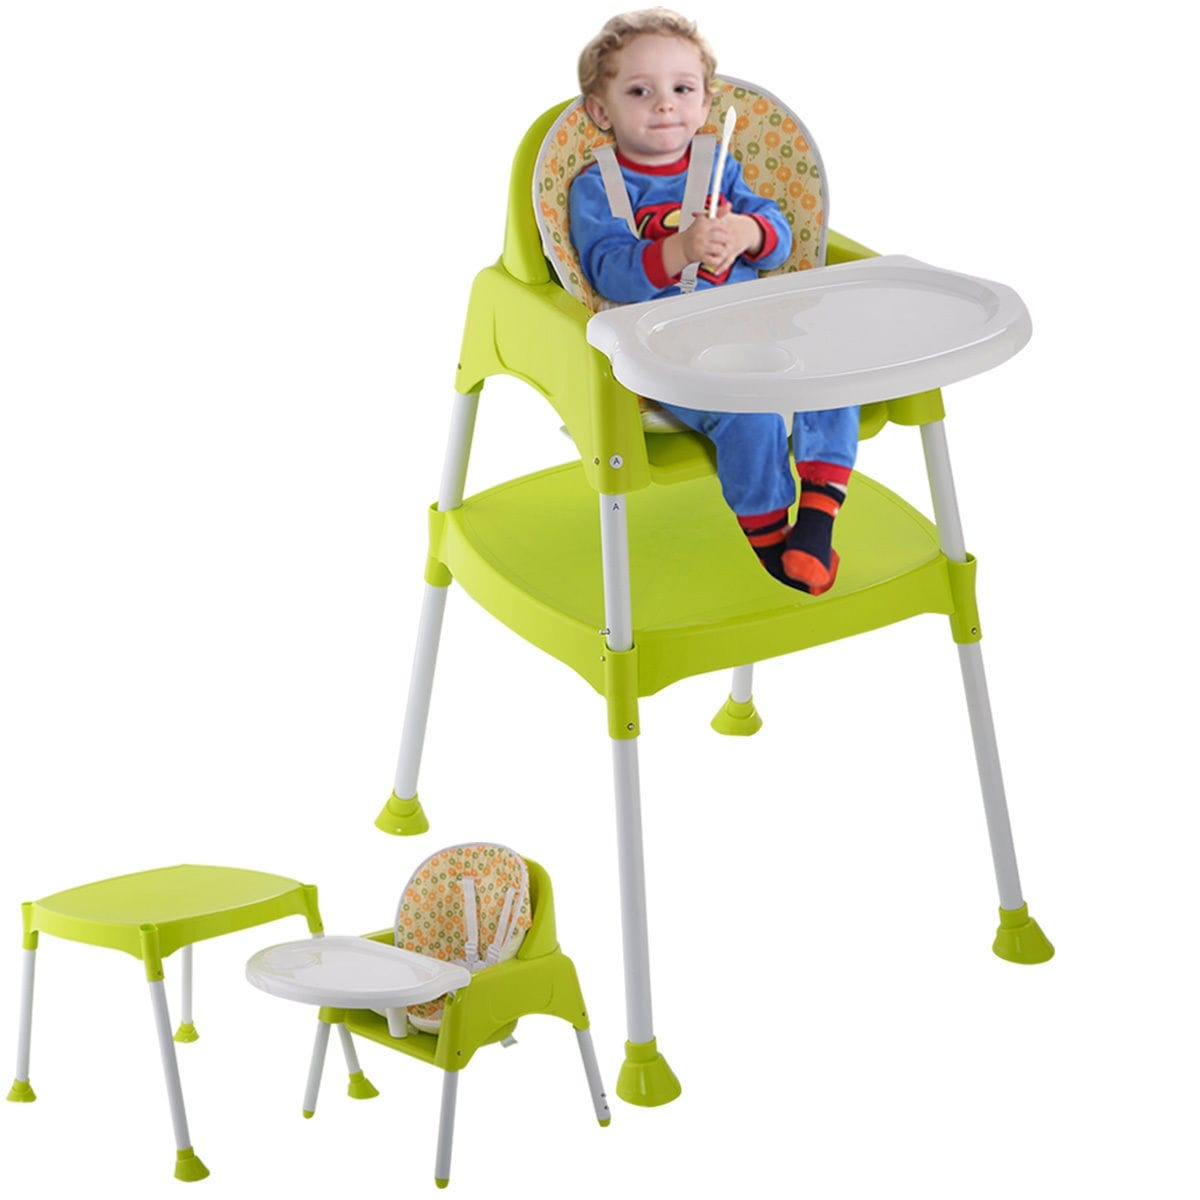 booster high chairs chair cover hire tamworth shop costway green 3 in 1 baby convertible table seat toddler feeding highchair